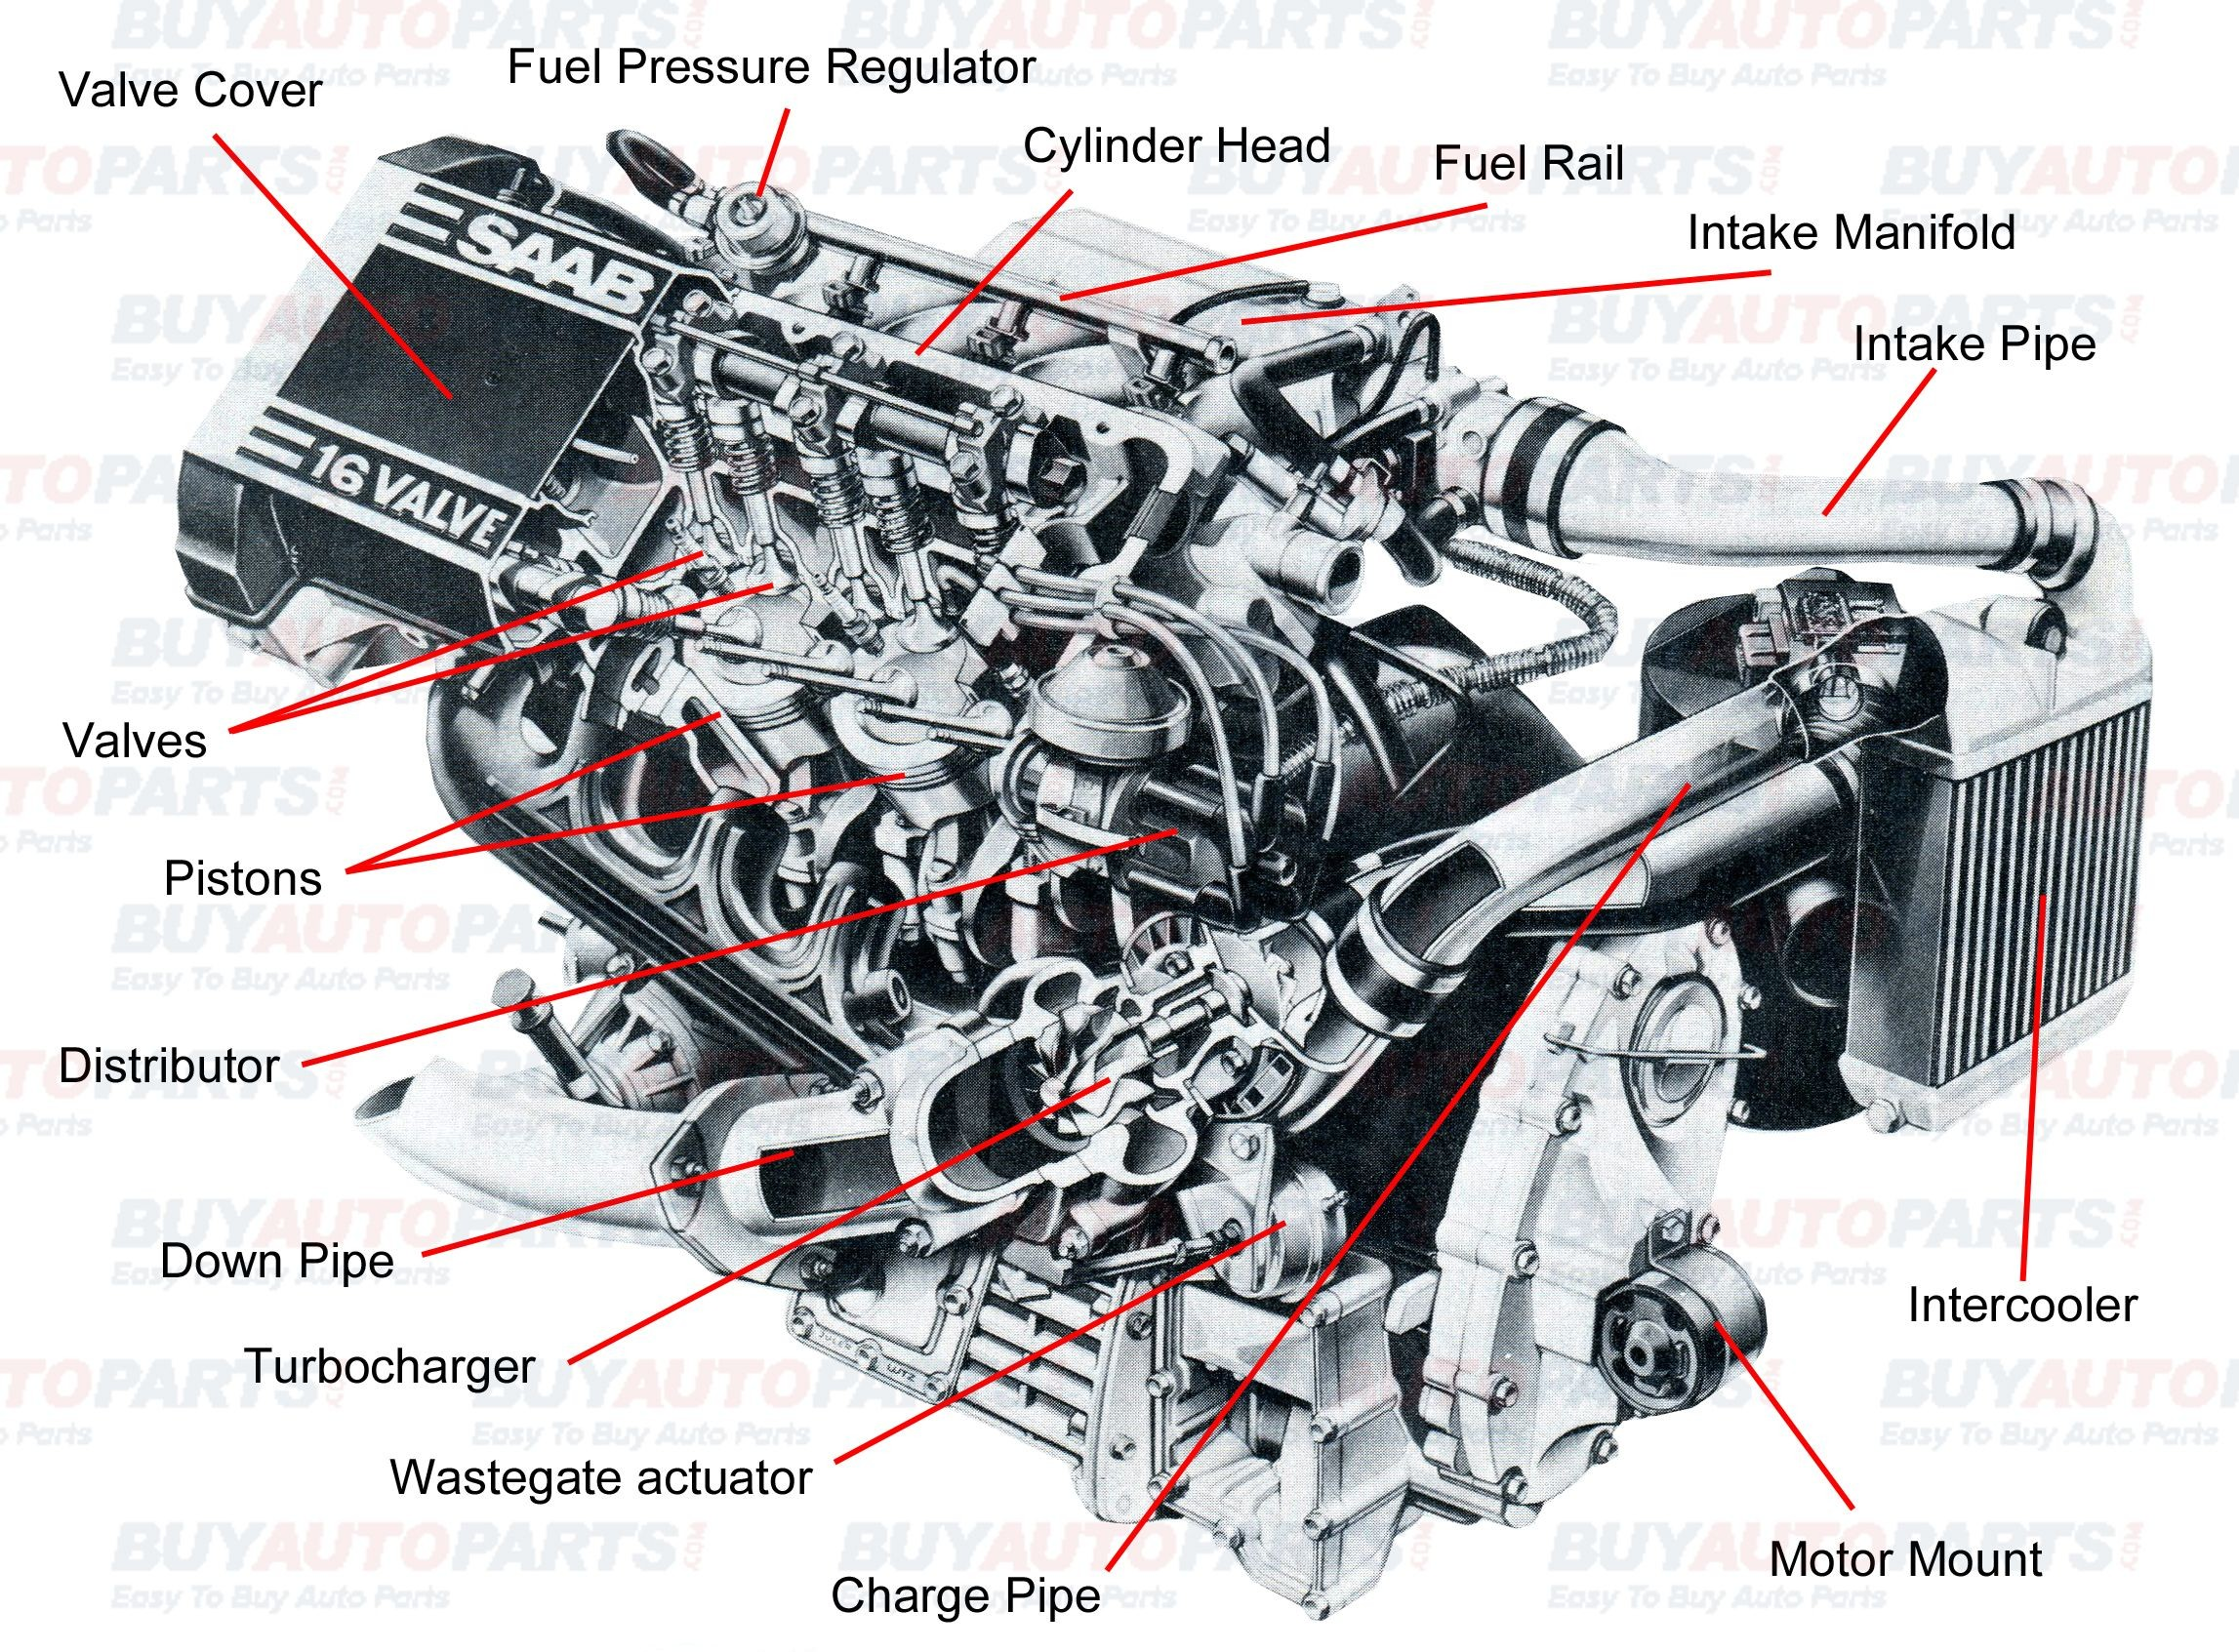 Engine Internals Diagram All Internal Bustion Engines Have the Same Basic Ponents the Of Engine Internals Diagram